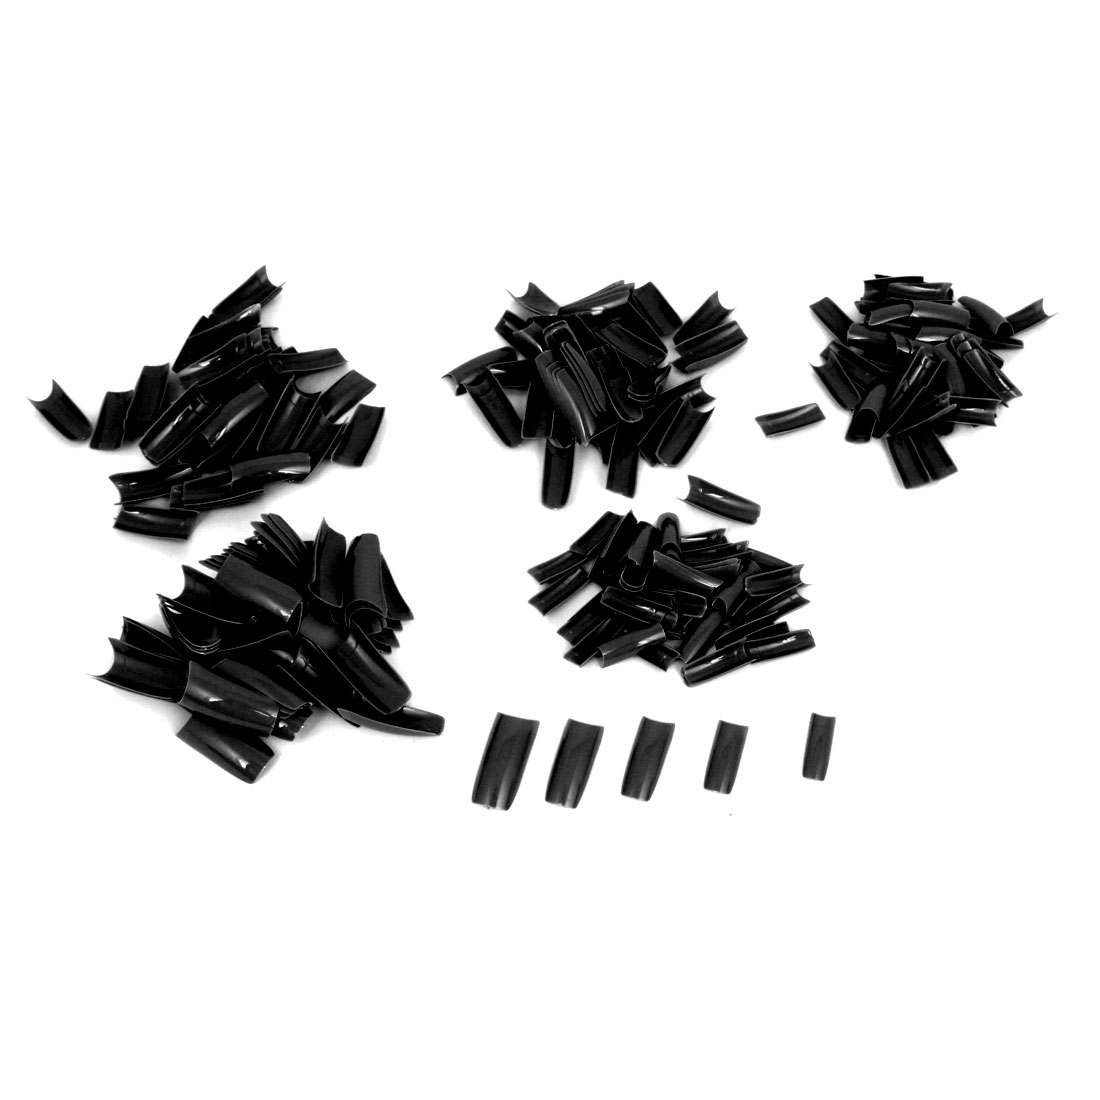 Women Black Plastic DIY False Nail Art Decal Stickers Tip Decoration 250 Pcs